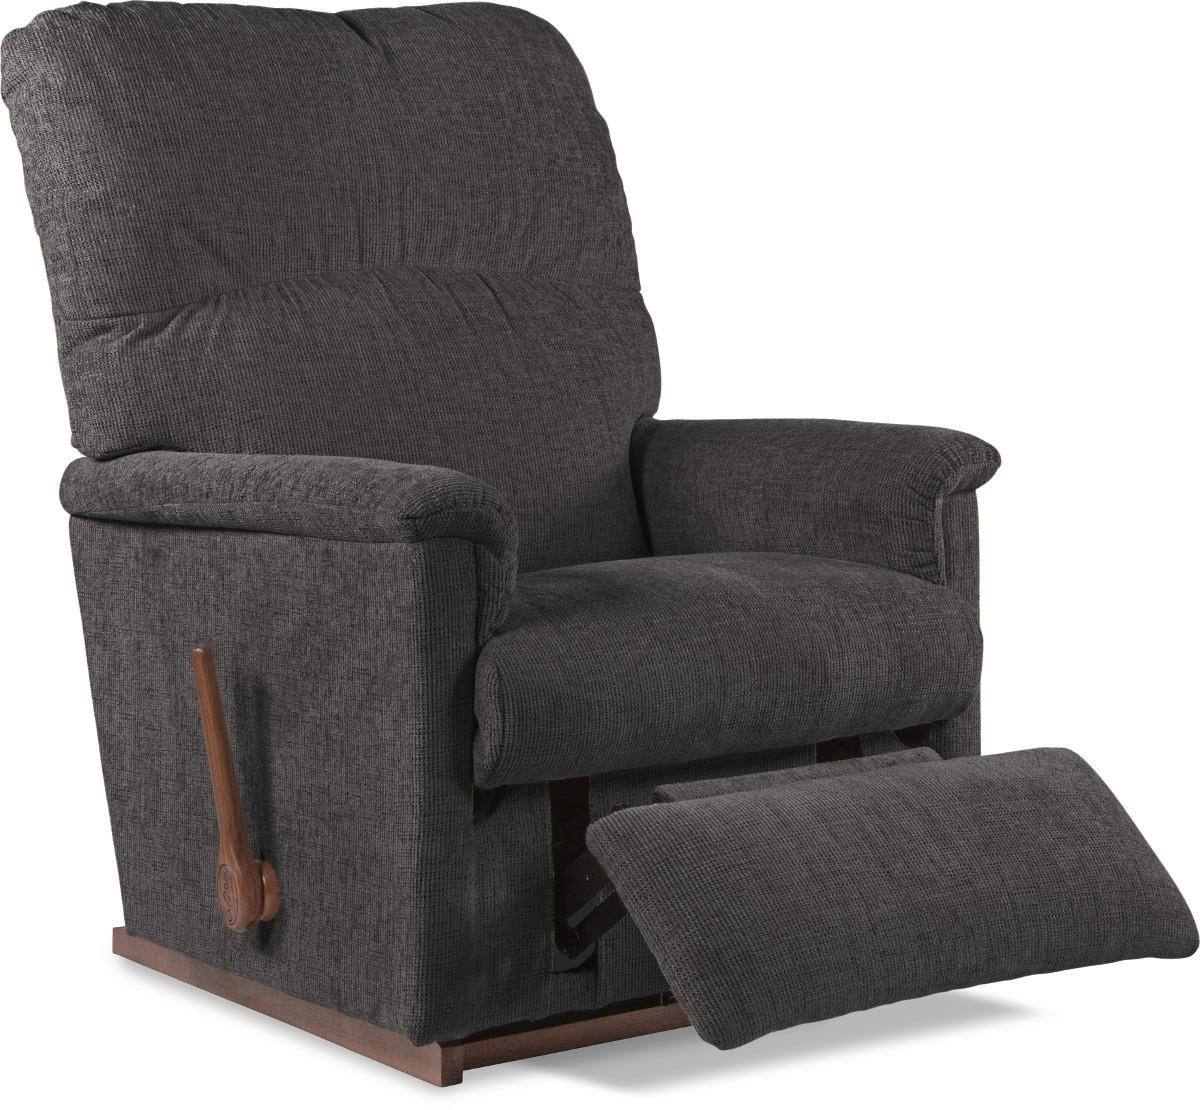 La Z Boy Collage Recliner Boulevard Home Furnishings